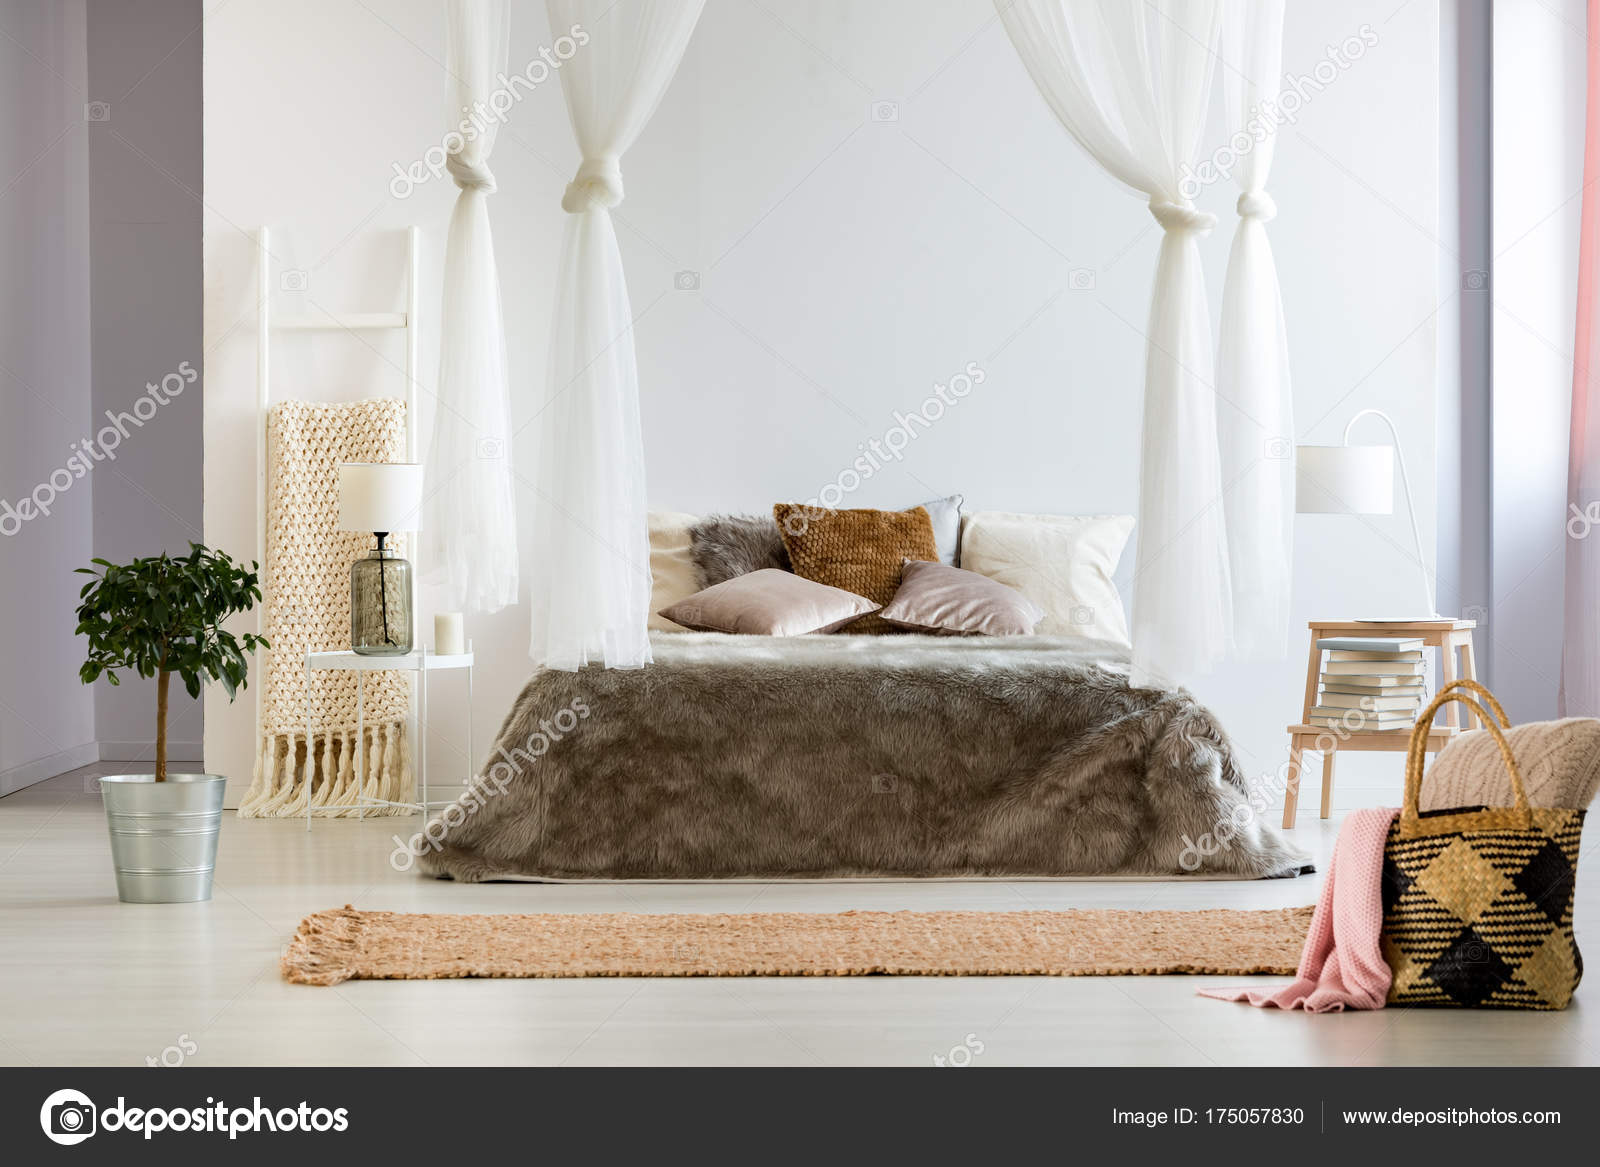 Bed Deken Slaapkamer Met Groot Bed Deken Stockfoto Photographee Eu